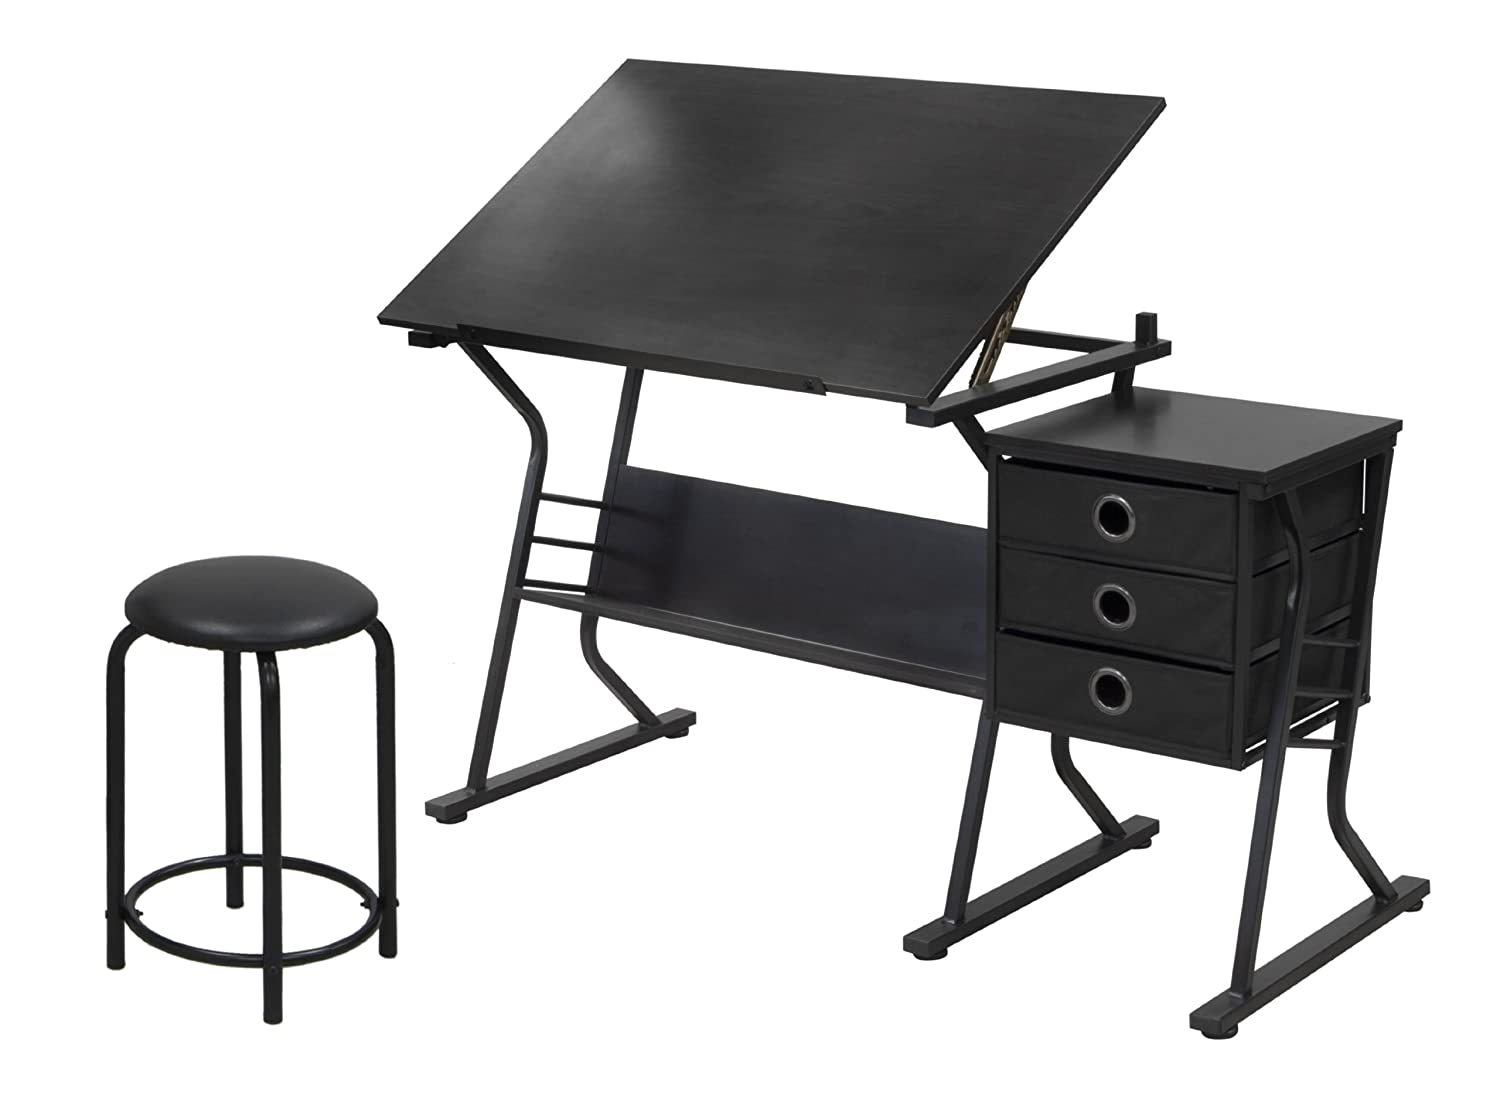 Amazon.com: Drafting Tables: Home & Kitchen